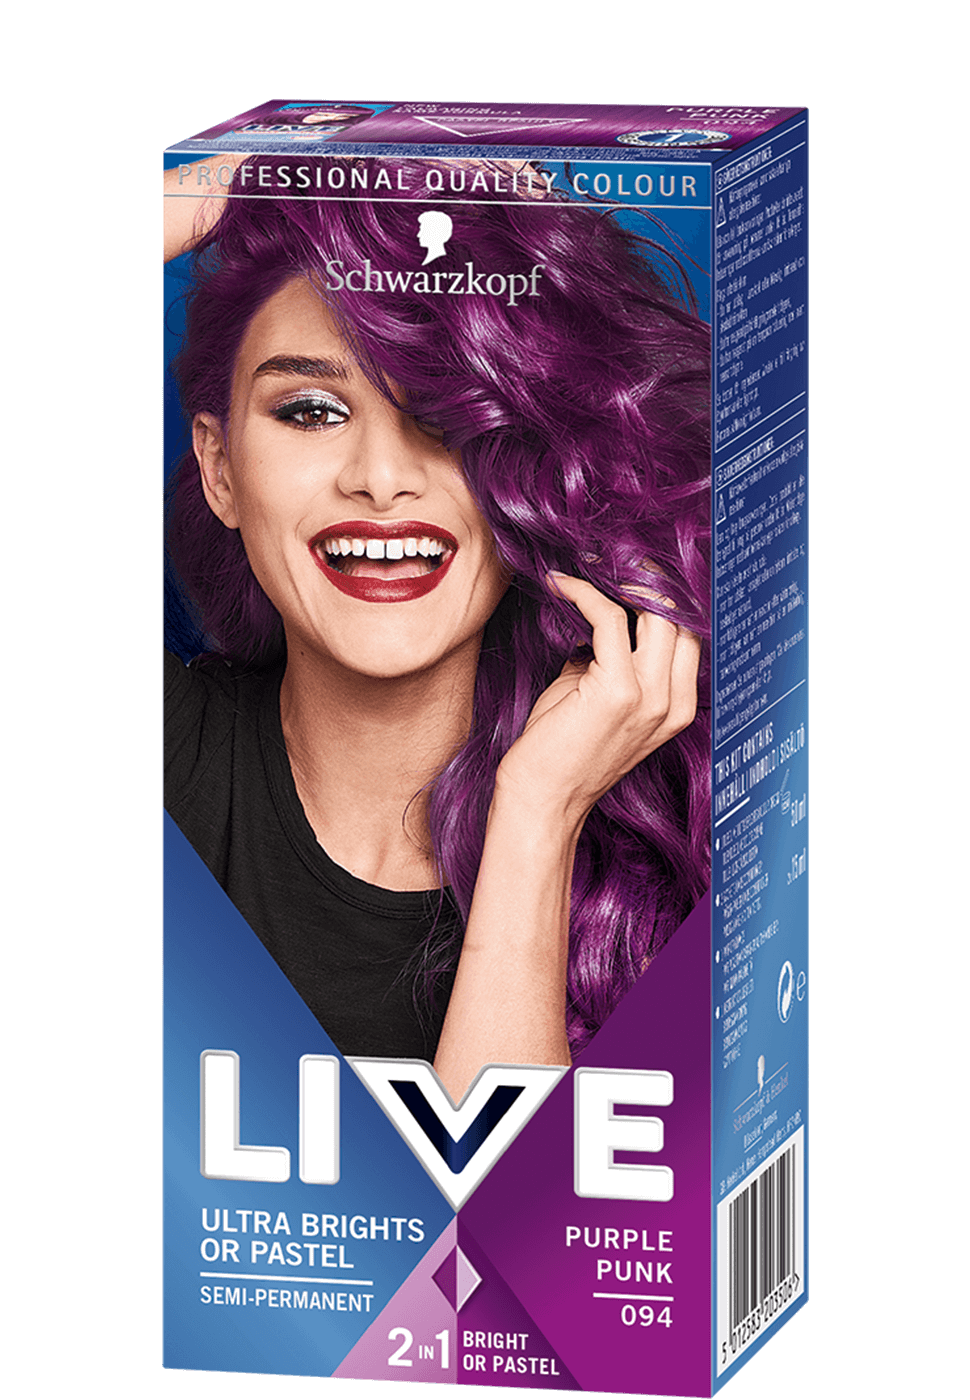 live_color_uk_ultra_brights_pastel_purple_punk_970x1400